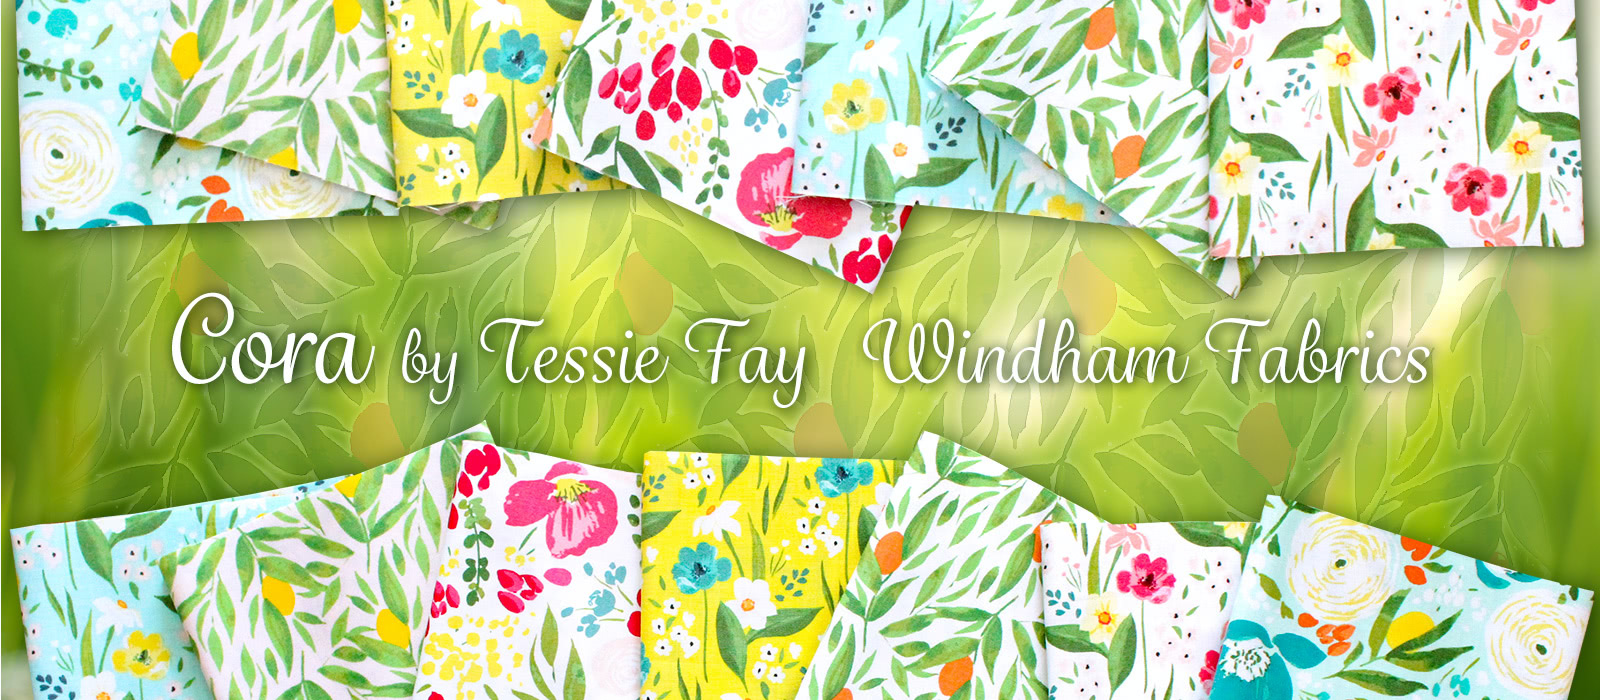 Windham Fabrics Cora Collection by Tessie Fay